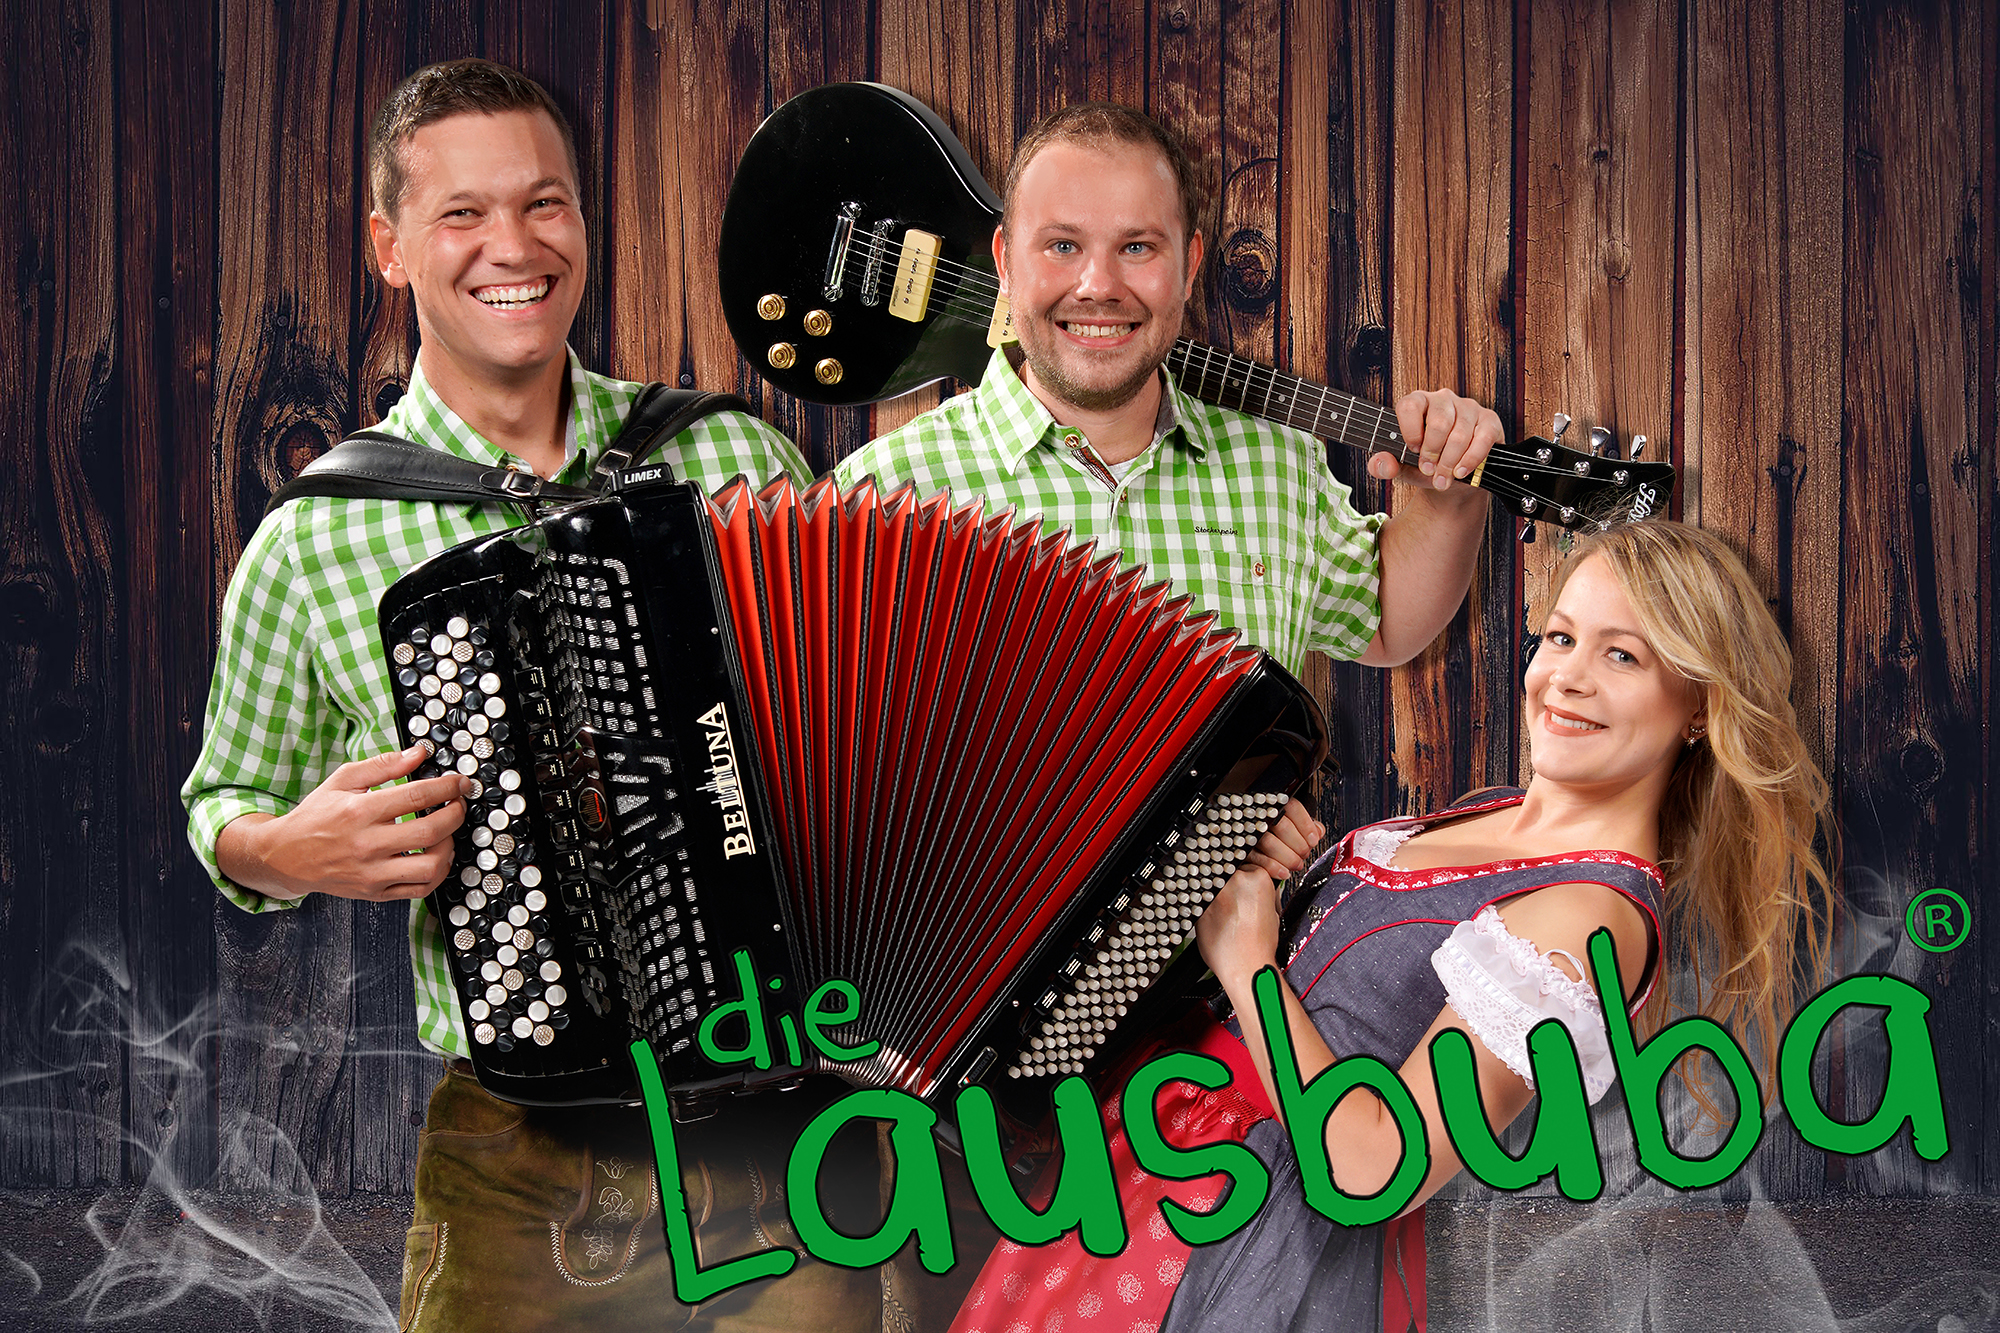 You are currently viewing Die Lausbuba – Oktoberfestband